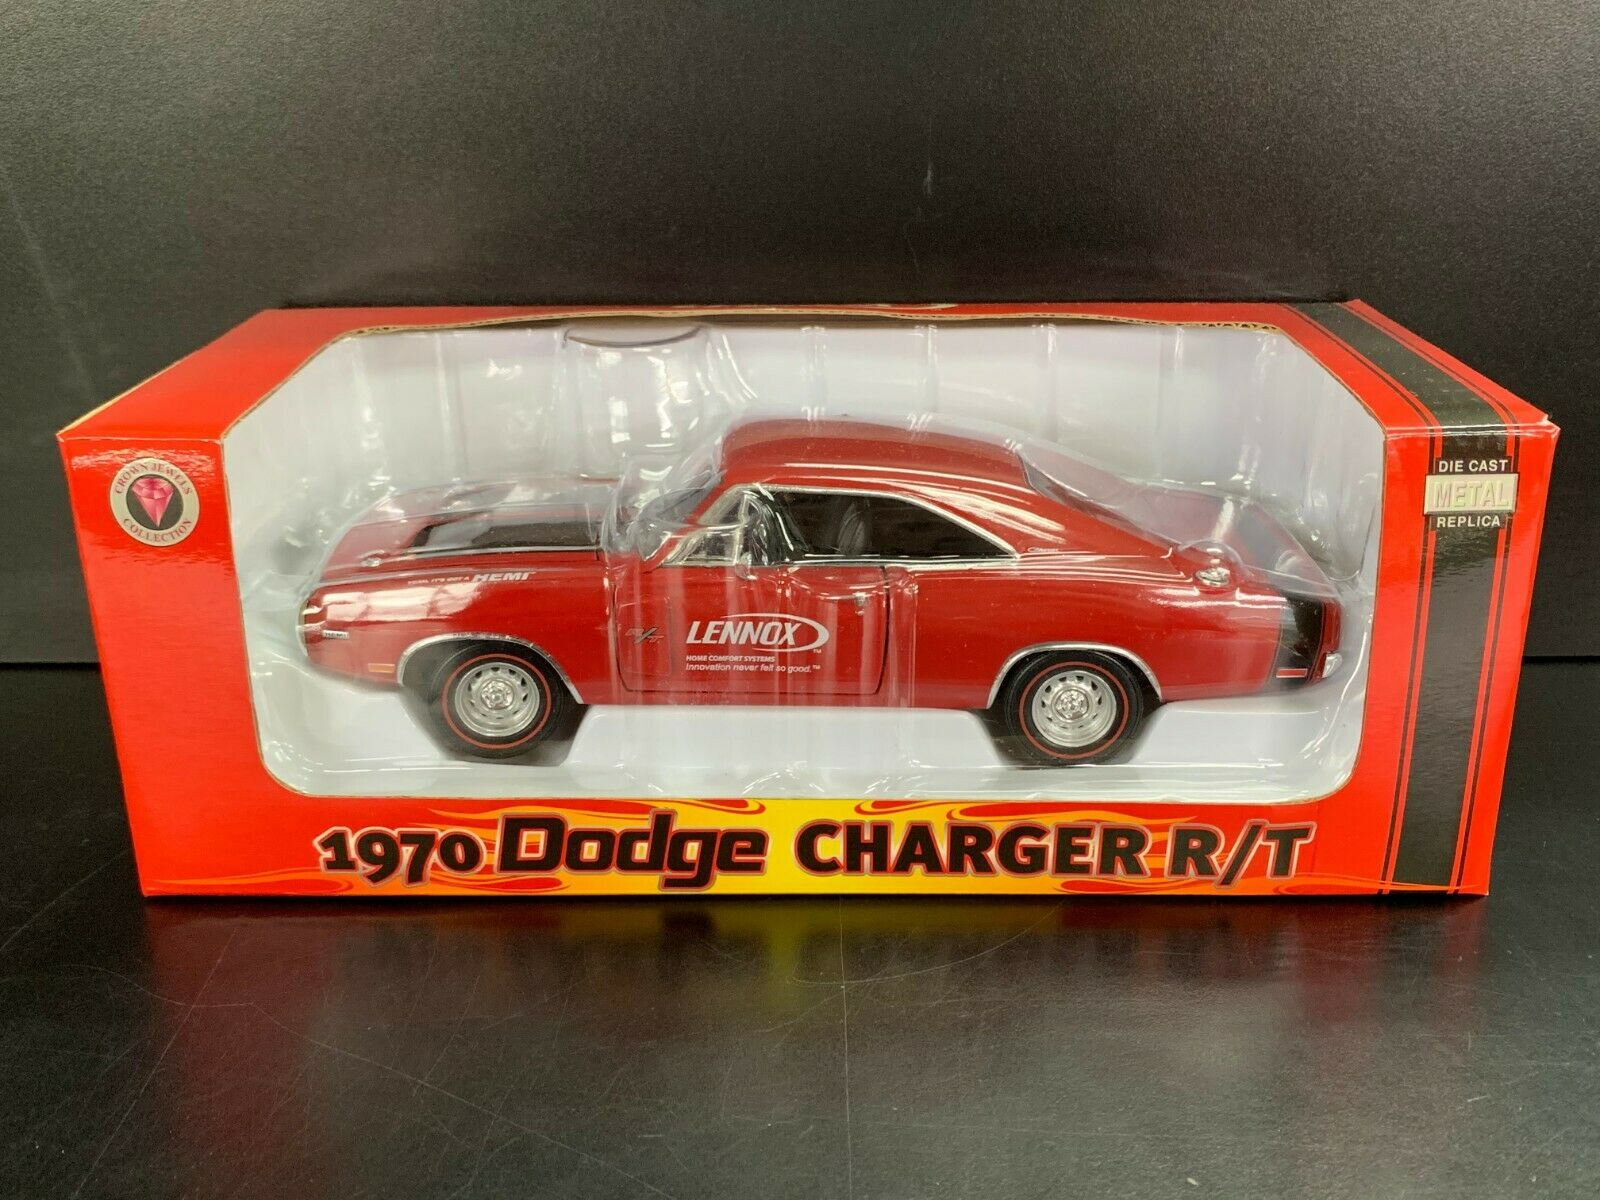 1970 Dodge Charger RT Hemi SCALA 1 24 DIE CAST Replic Lennox 2006 CoroNA Premium